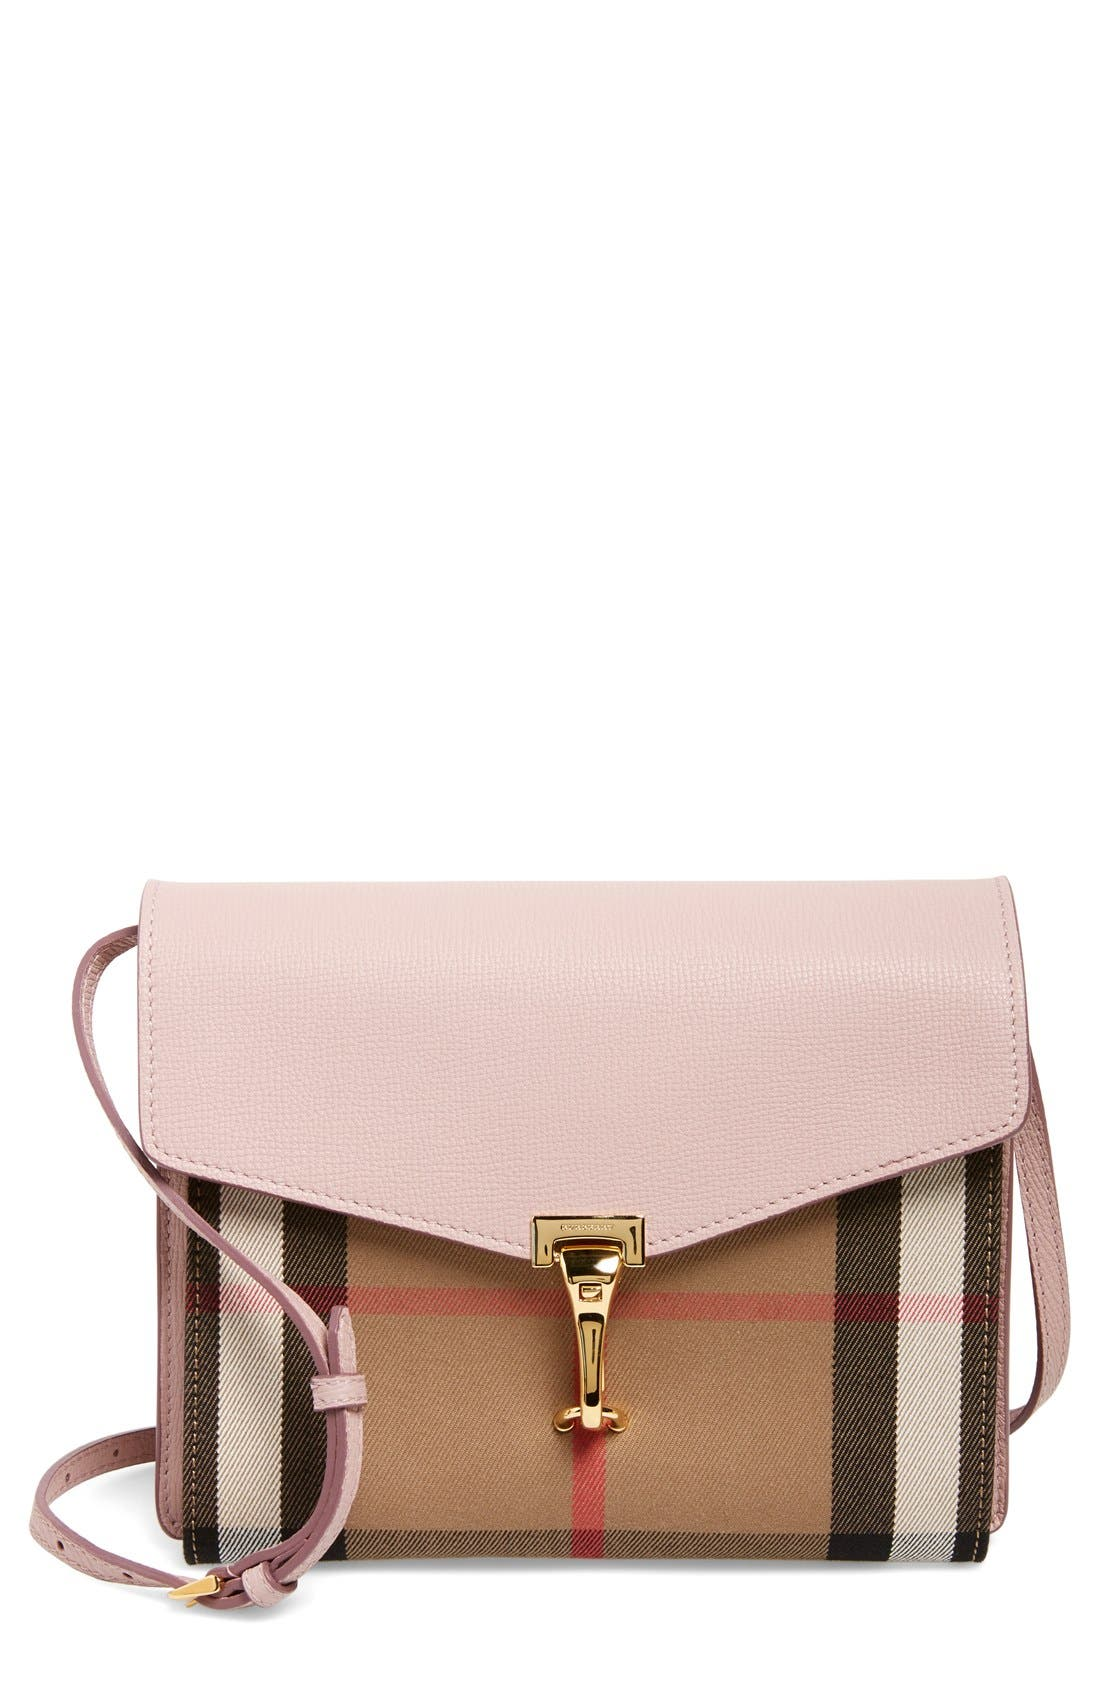 'Small Macken' Check Crossbody Bag,                             Main thumbnail 1, color,                             Pale Orchid